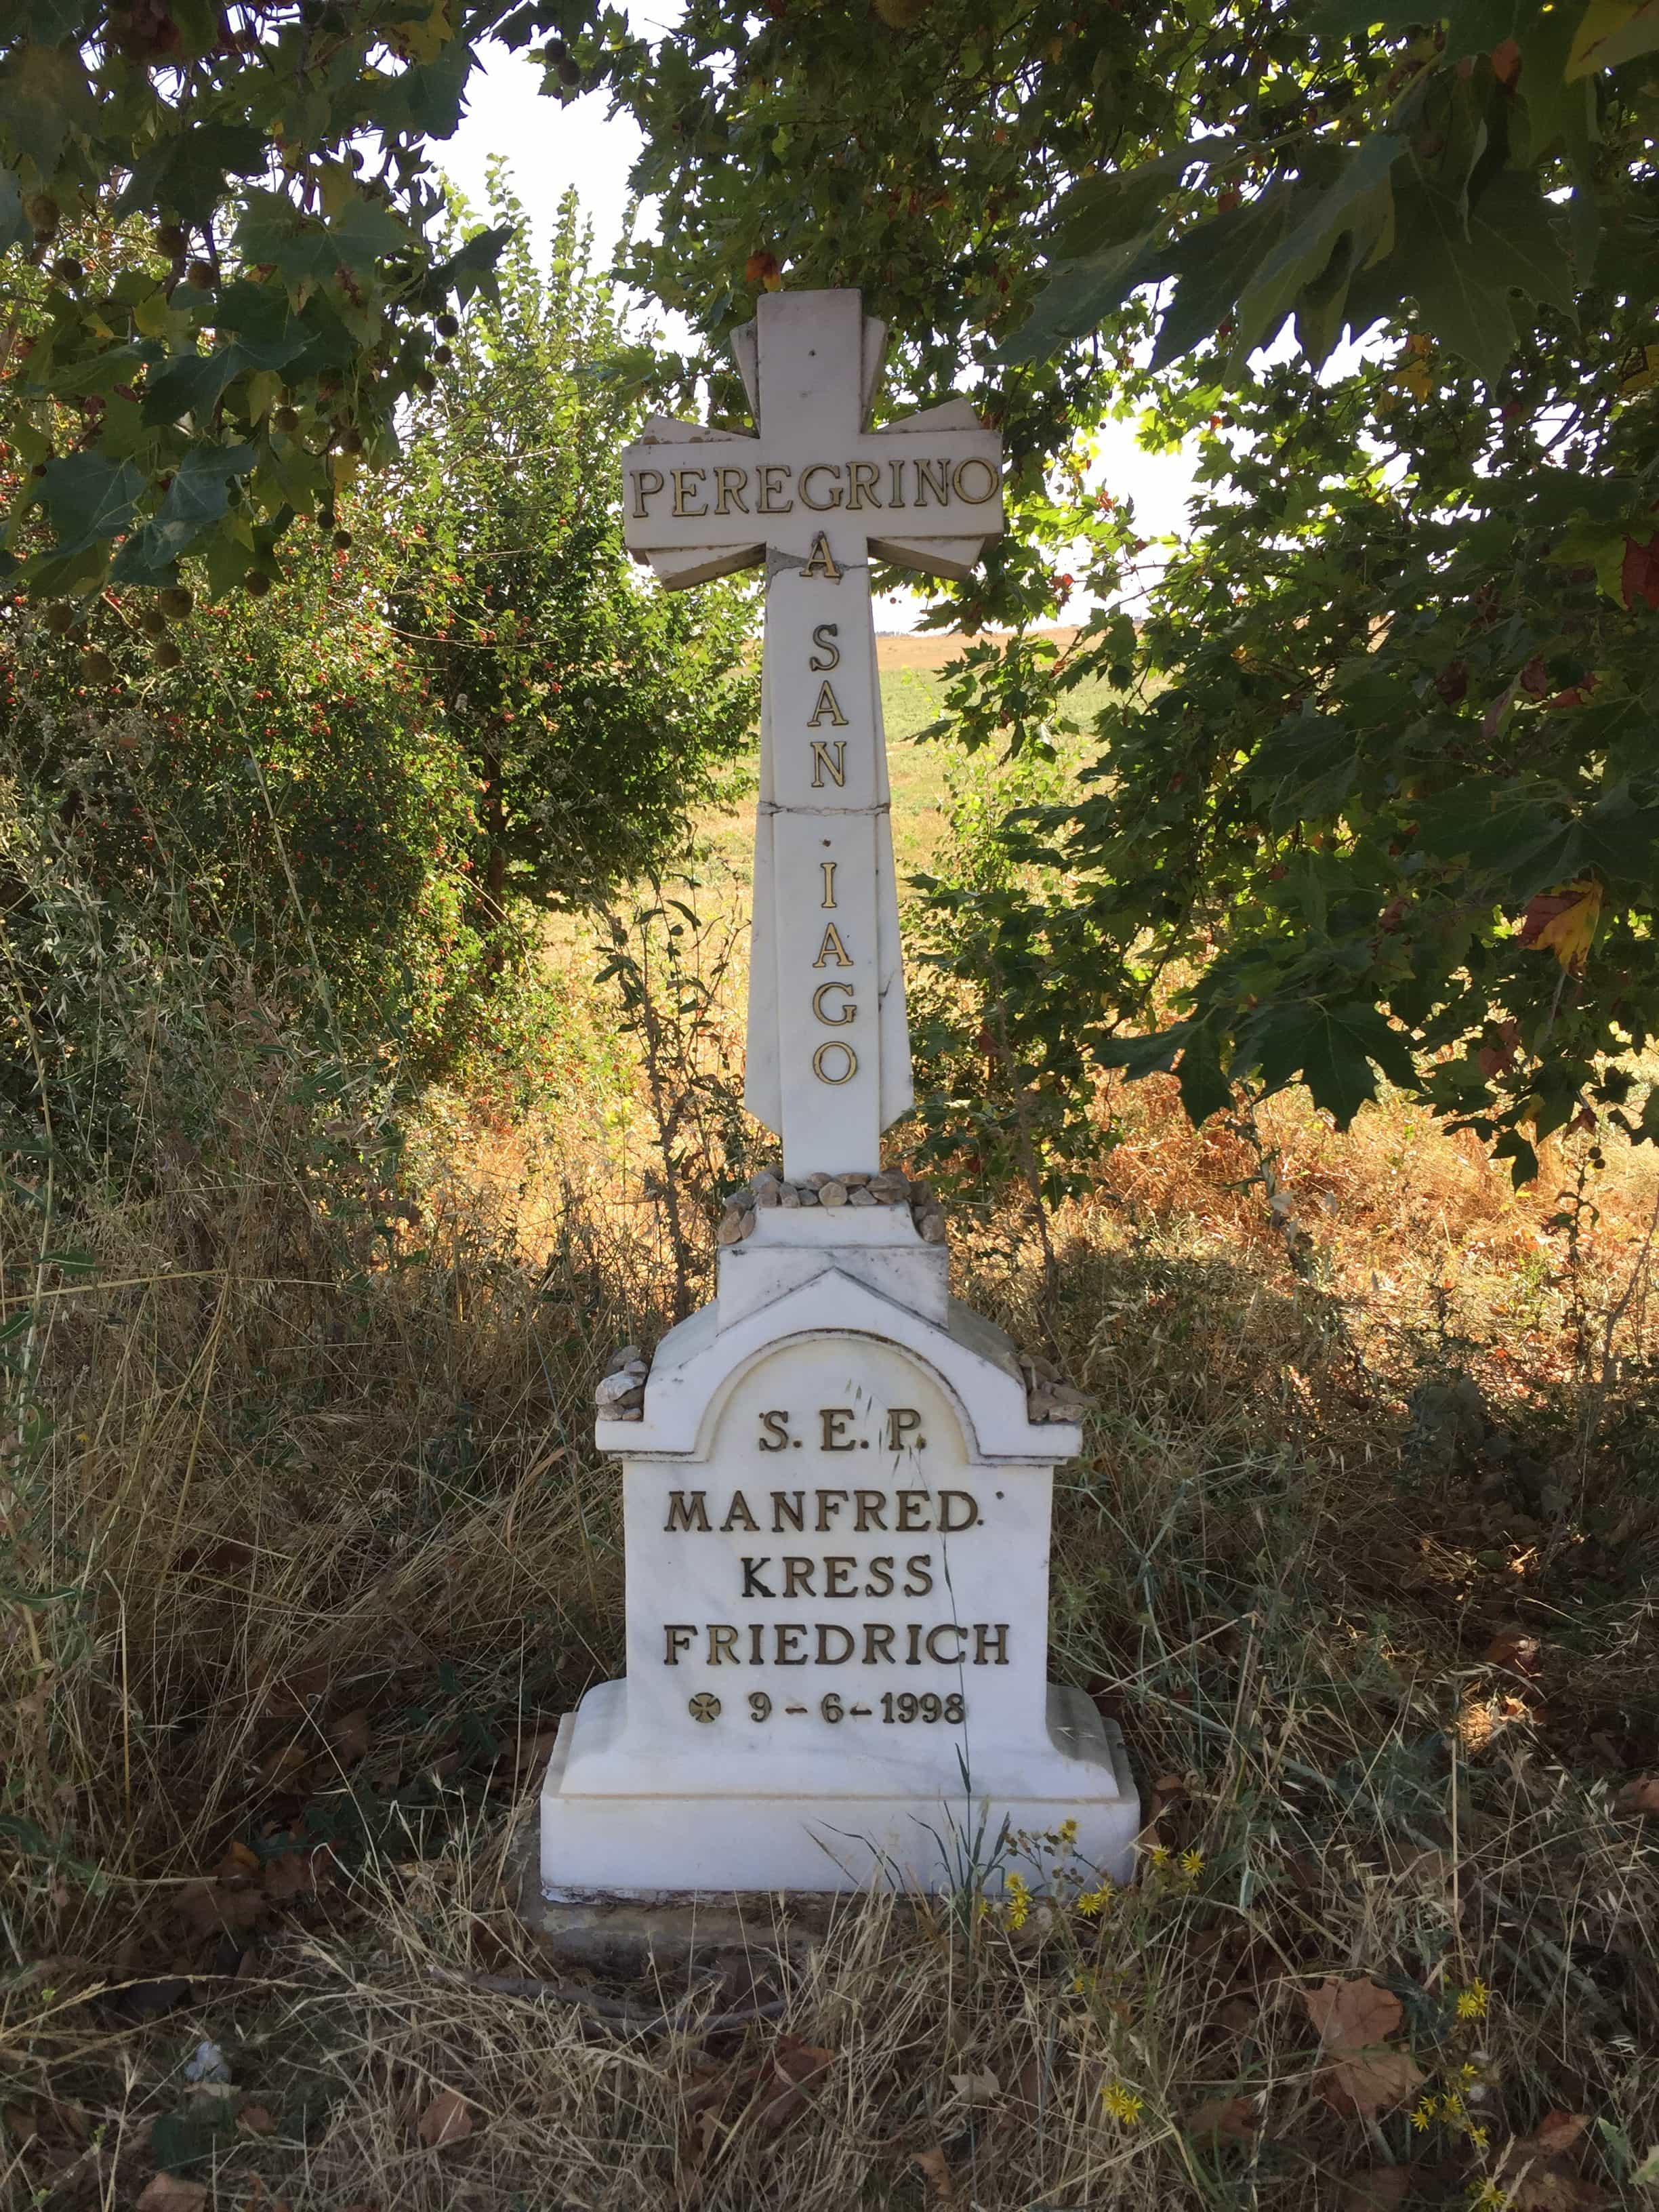 One of many graves along the way